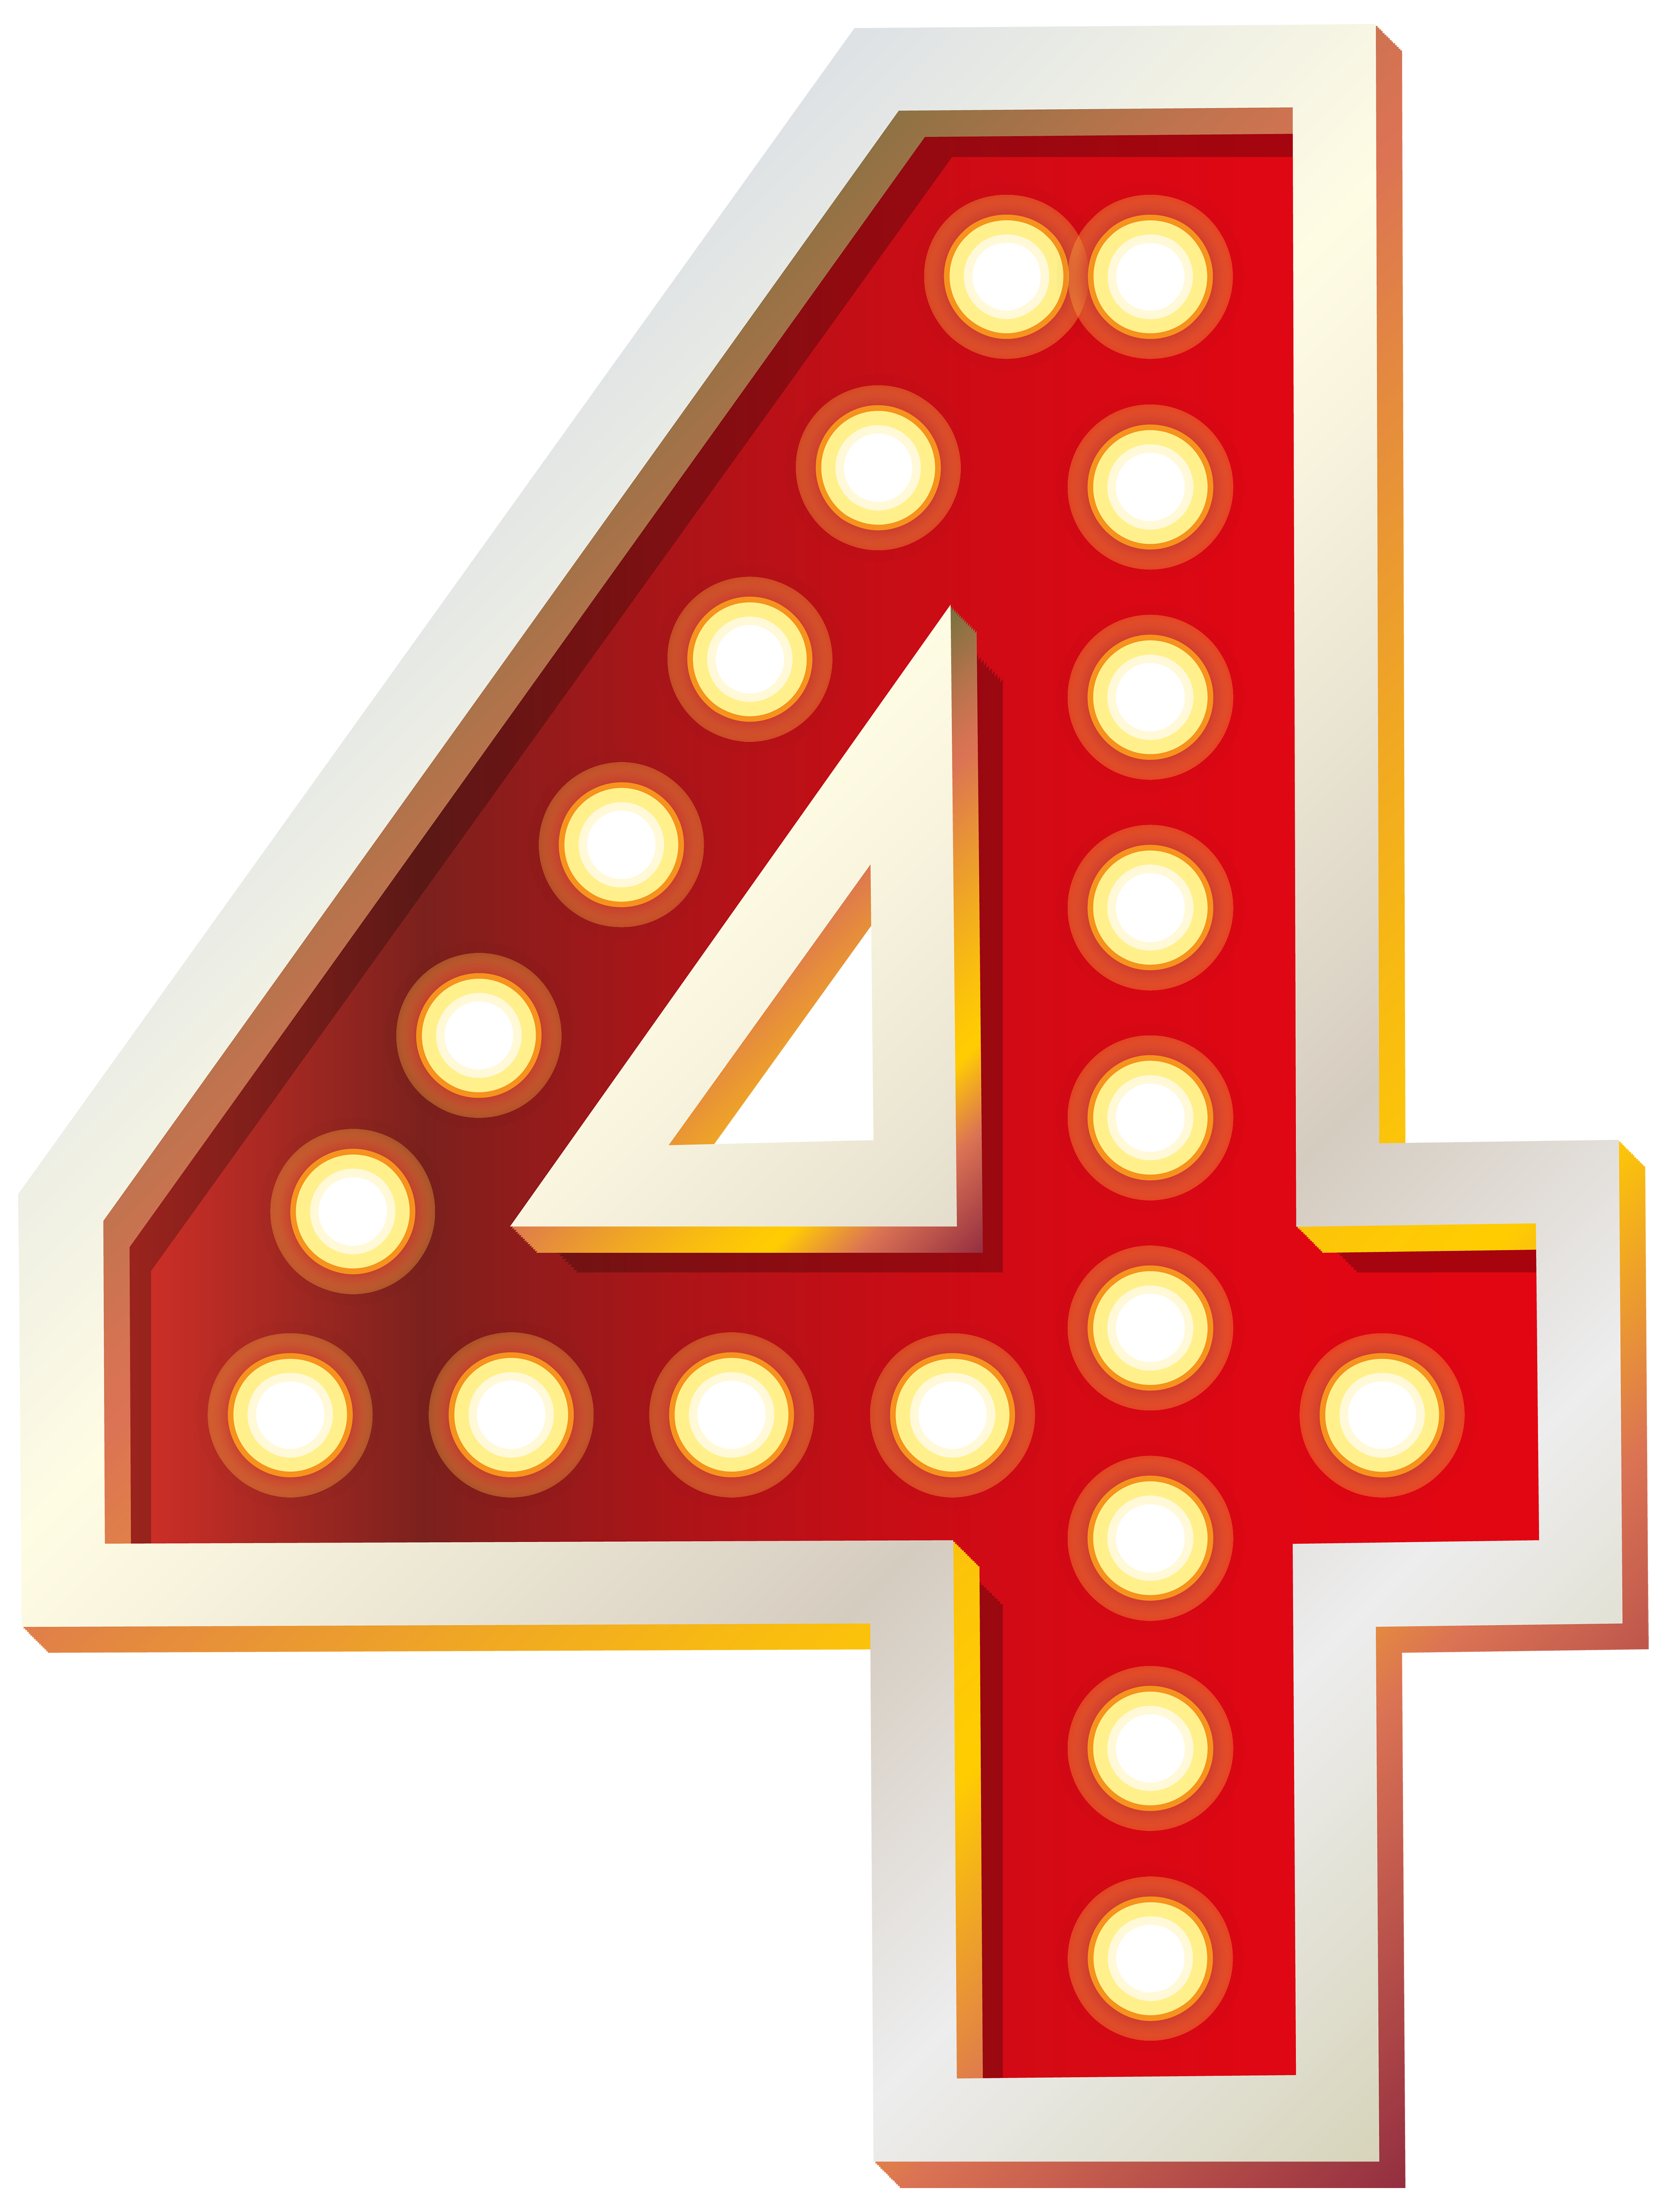 Four clipart. Red number with lights